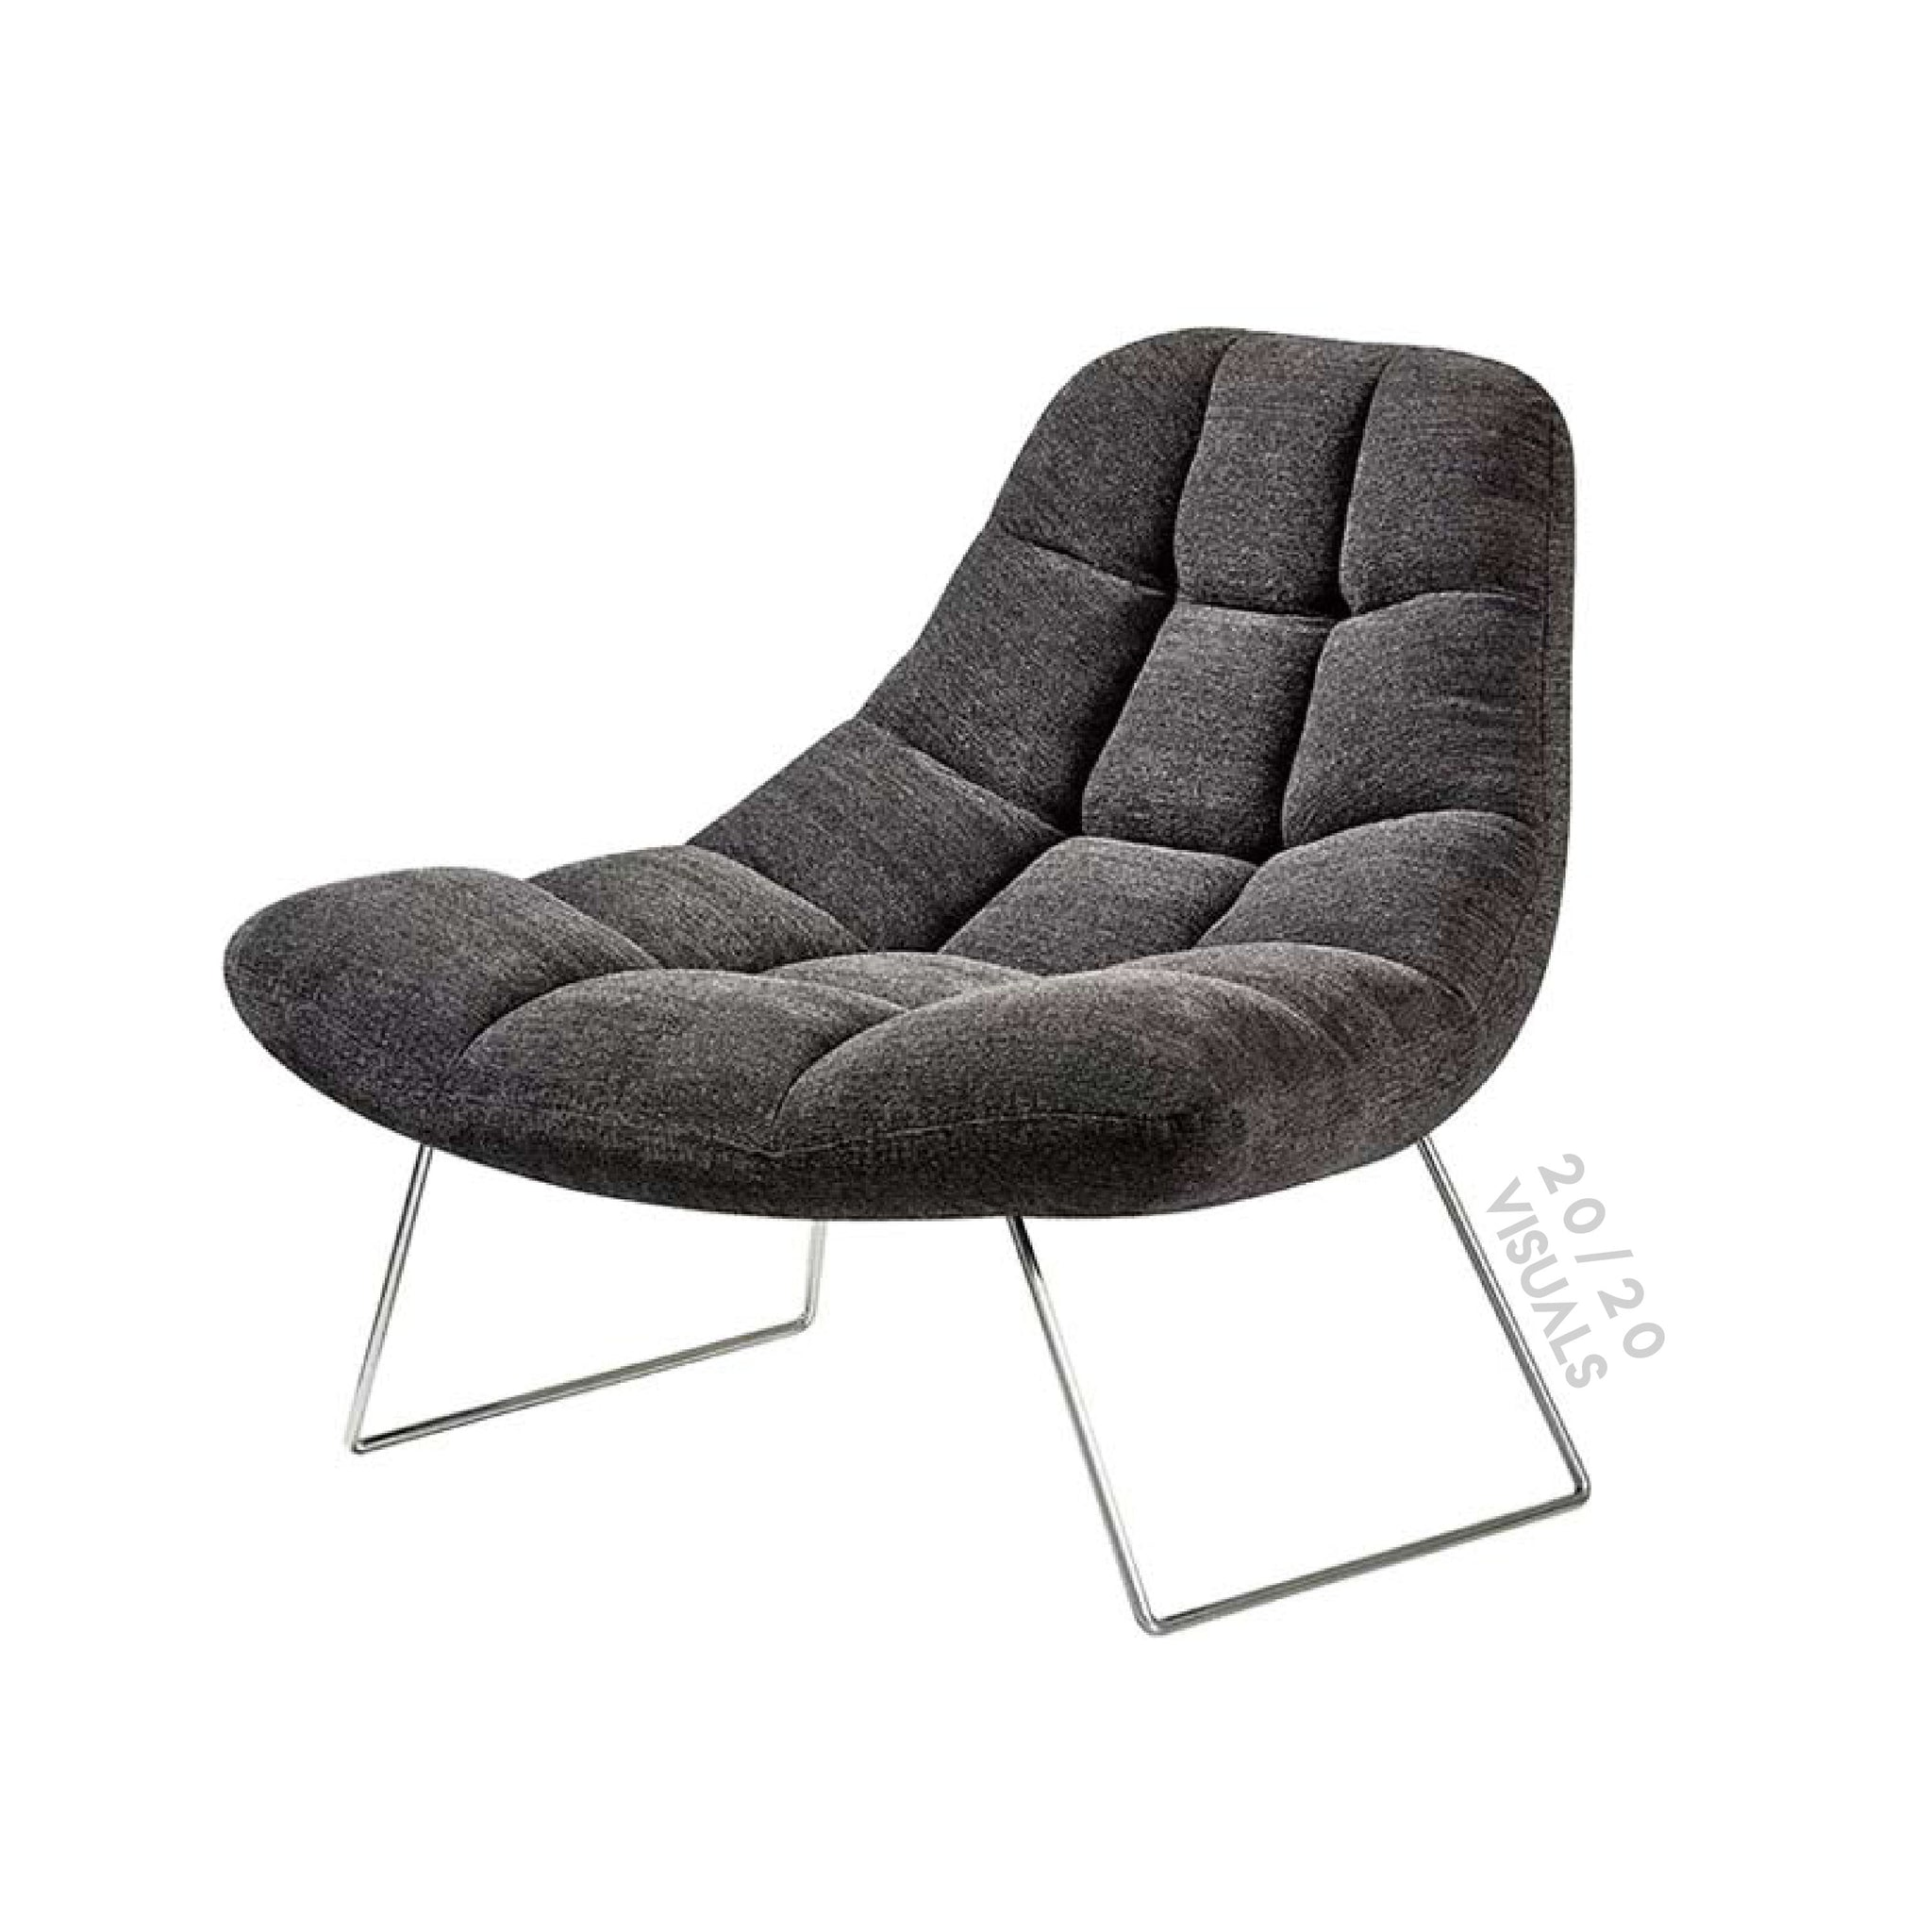 Cushioned Patio Chair